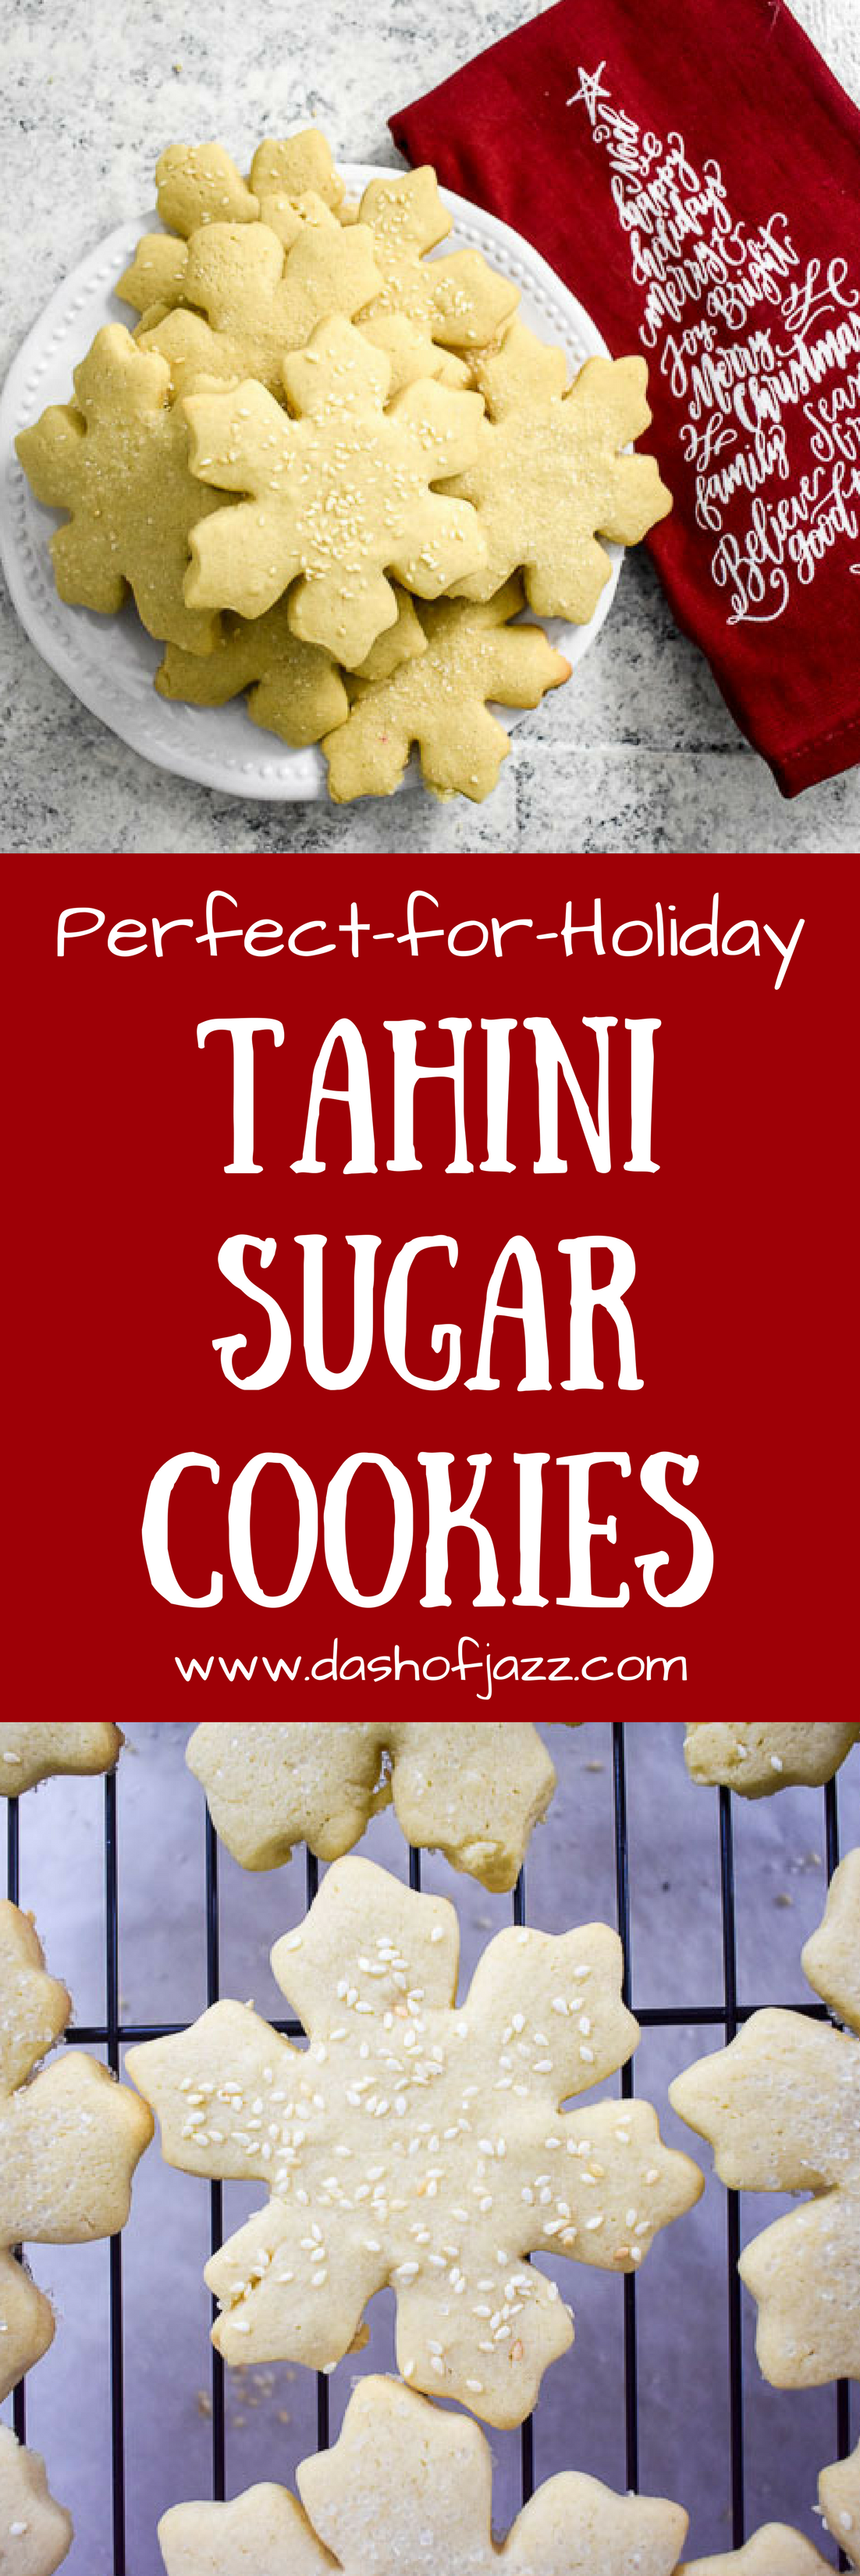 Uniquely-flavored tahini sugar cookies are perfect for the holidays or any time of year. Cut them out in your favorite shapes and enjoy the toasty tahini flavor that balances out the classic sugar cookie flavor. Recipe by Dash of Jazz #Christmascookierecipes #dashofjazzblog